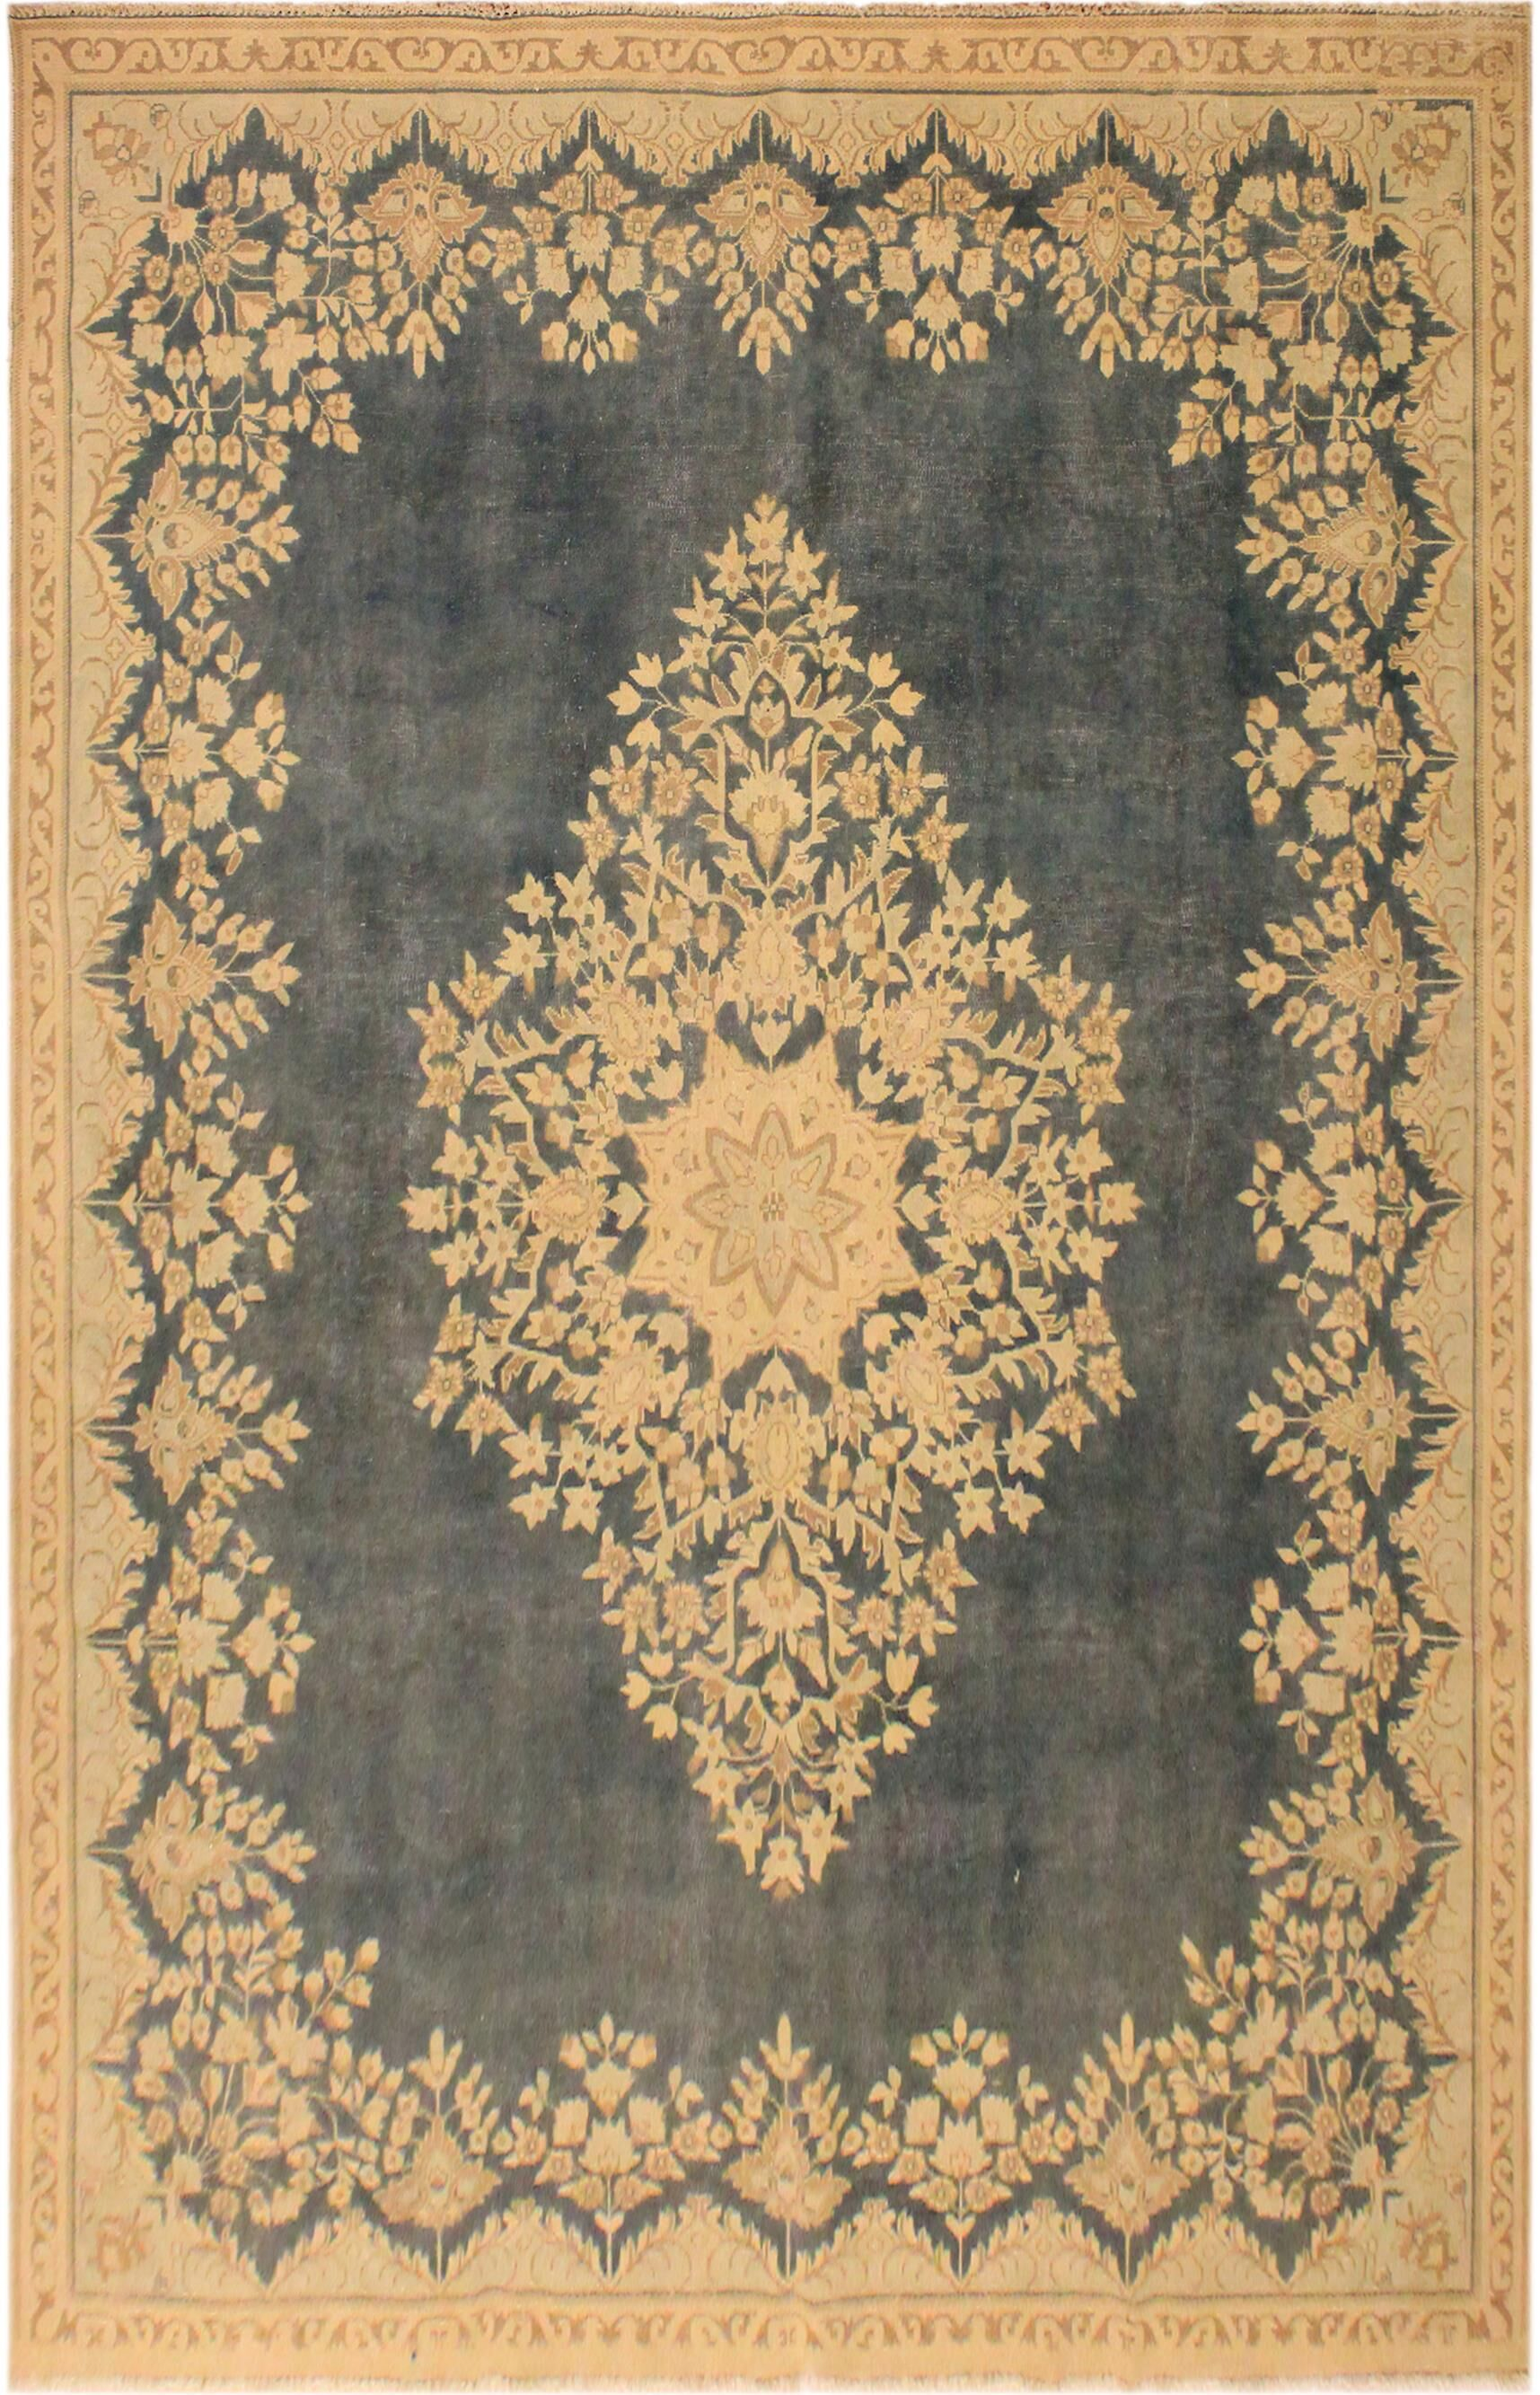 One-of-a-Kind Waldorf Vintage Distressed Overdyed Hand-Woven Wool Gray/Beige Area Rug